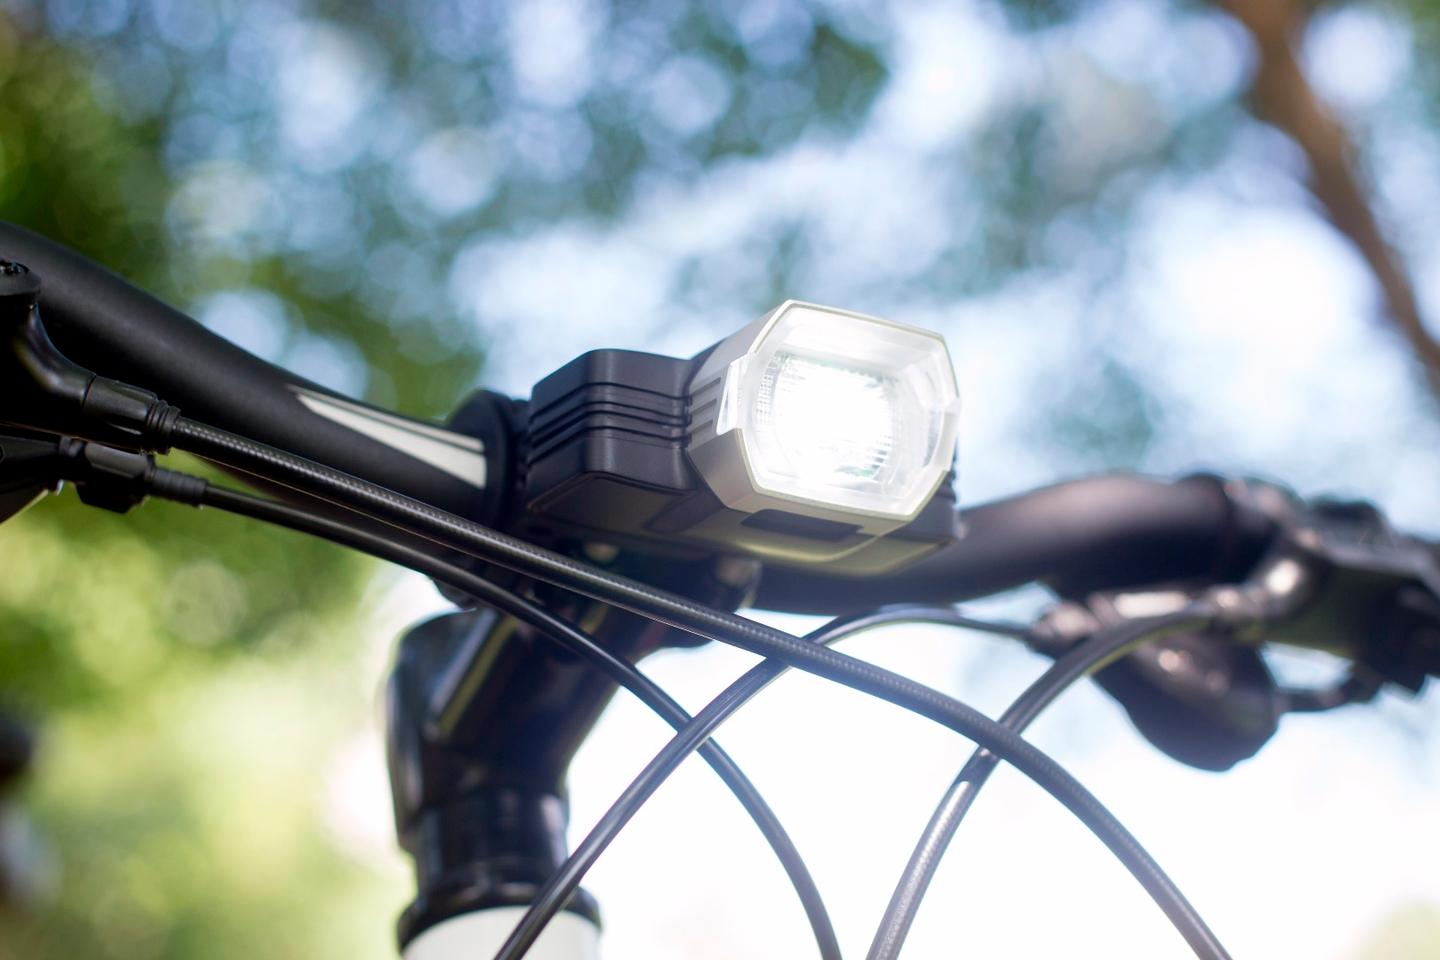 The Radius F1 utilizes an inertial measurement unit (which includes an accelerometer and gyroscope) to determine how fast the bike is going